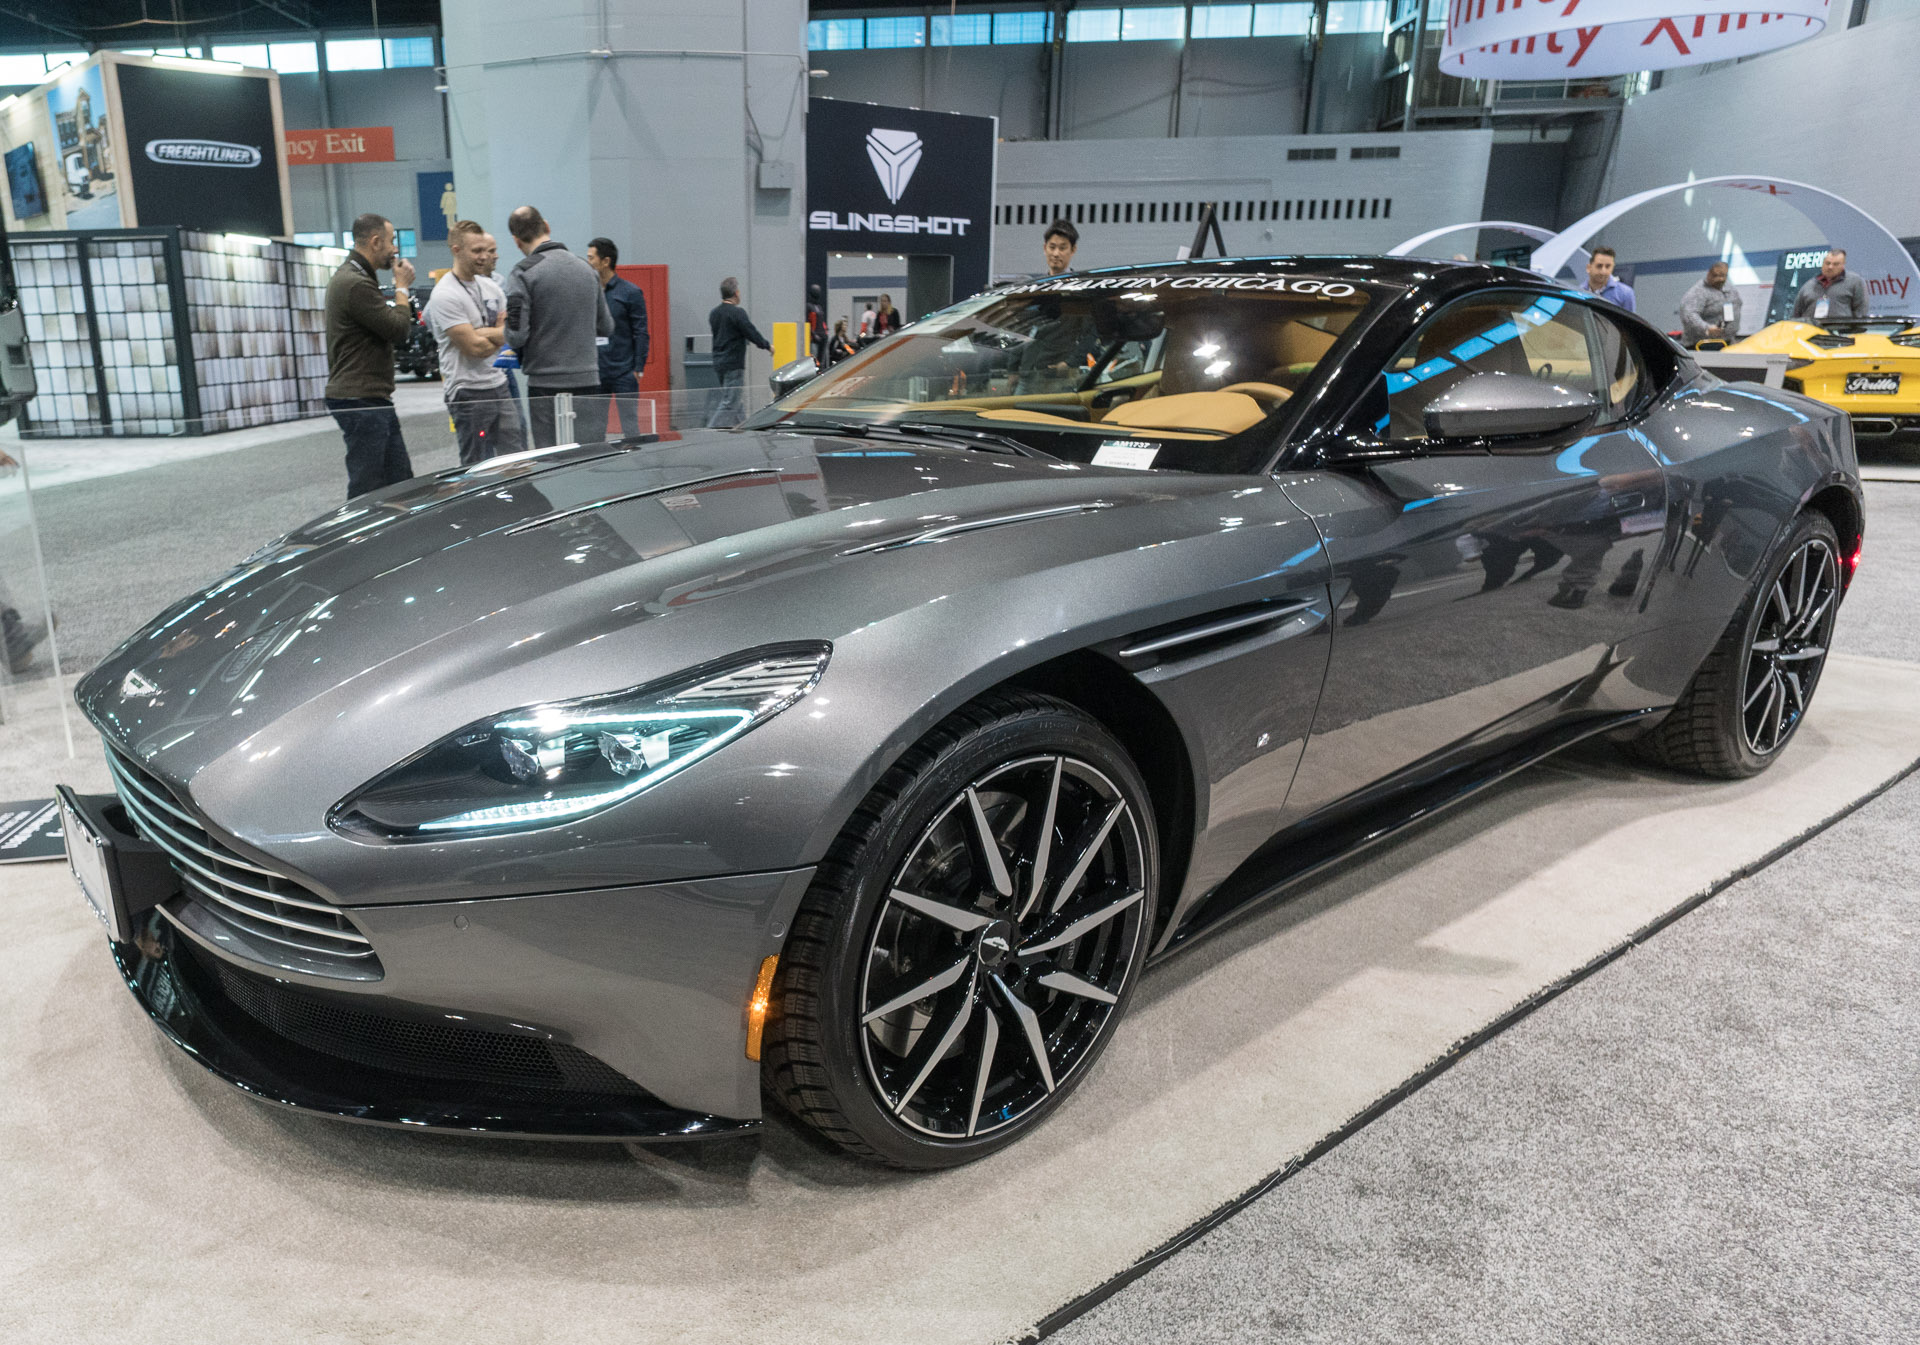 Up Close: Aston Martin DB11